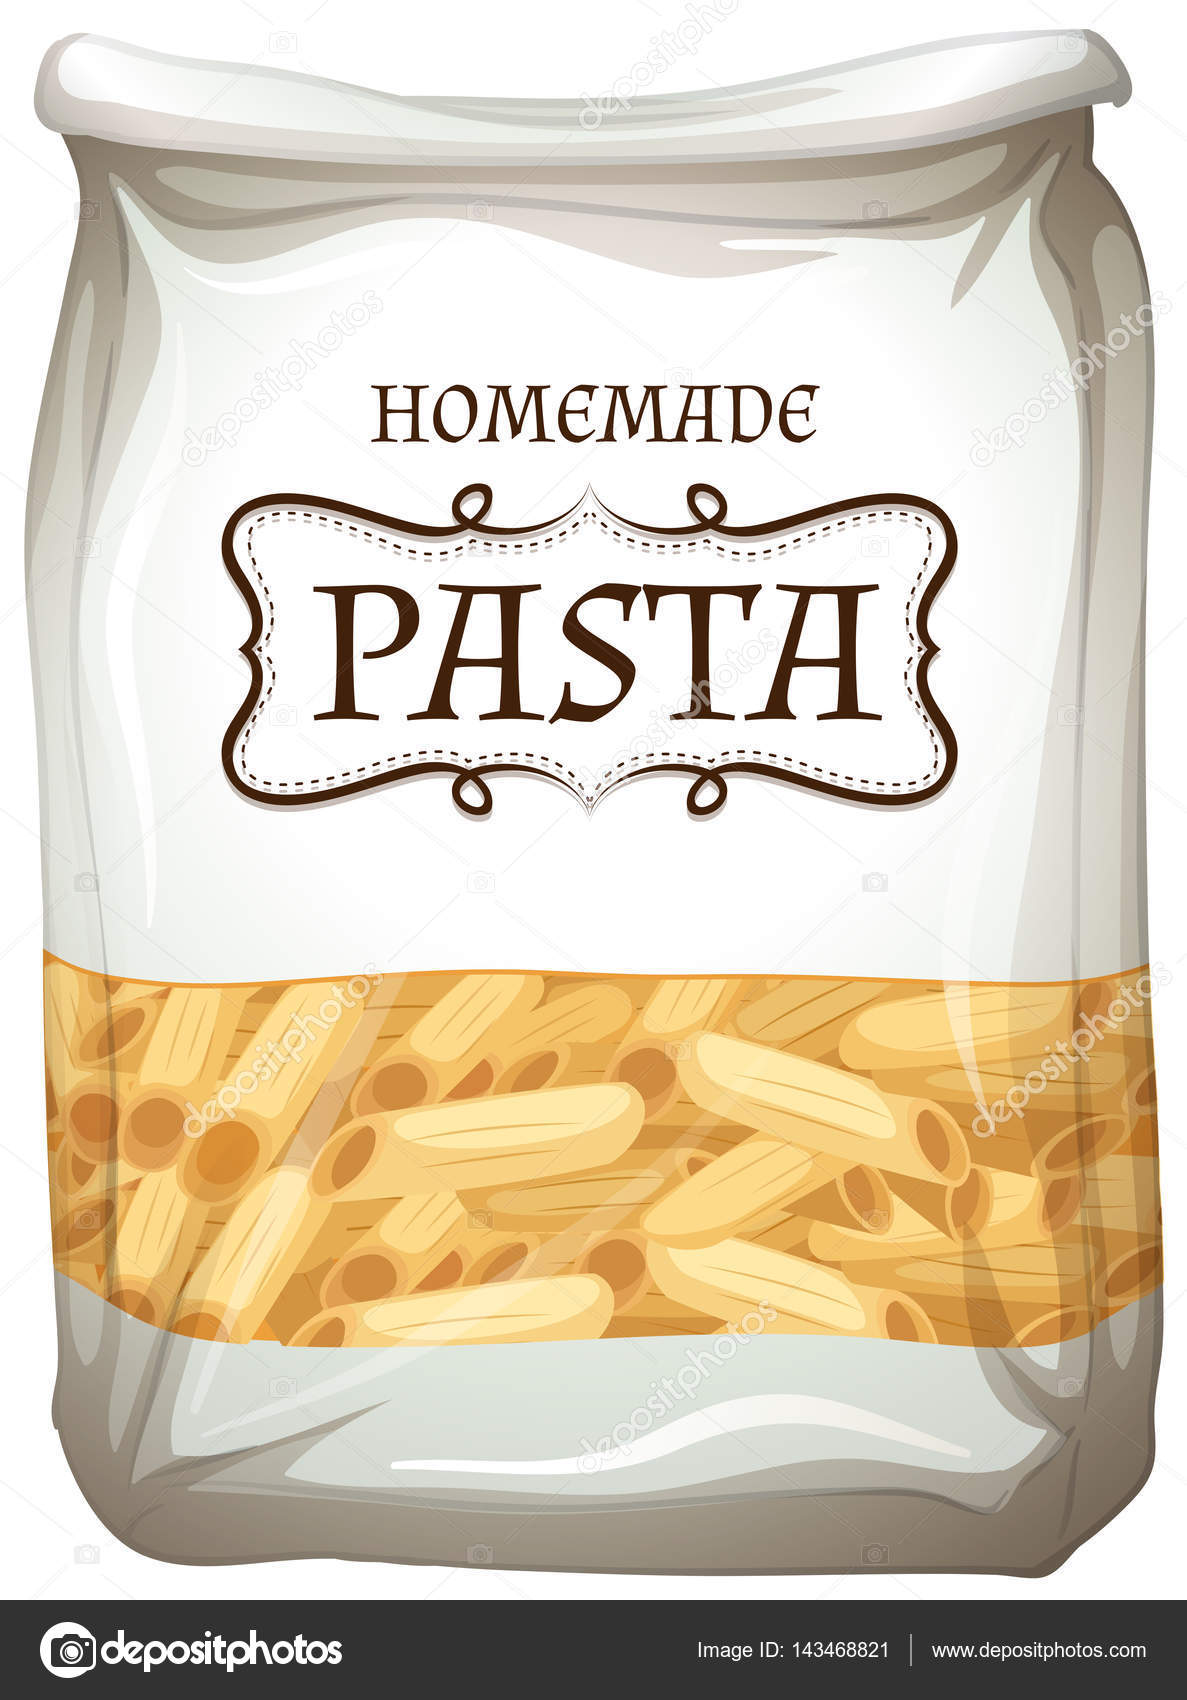 Bags clipart pasta. Homemade in bag stock